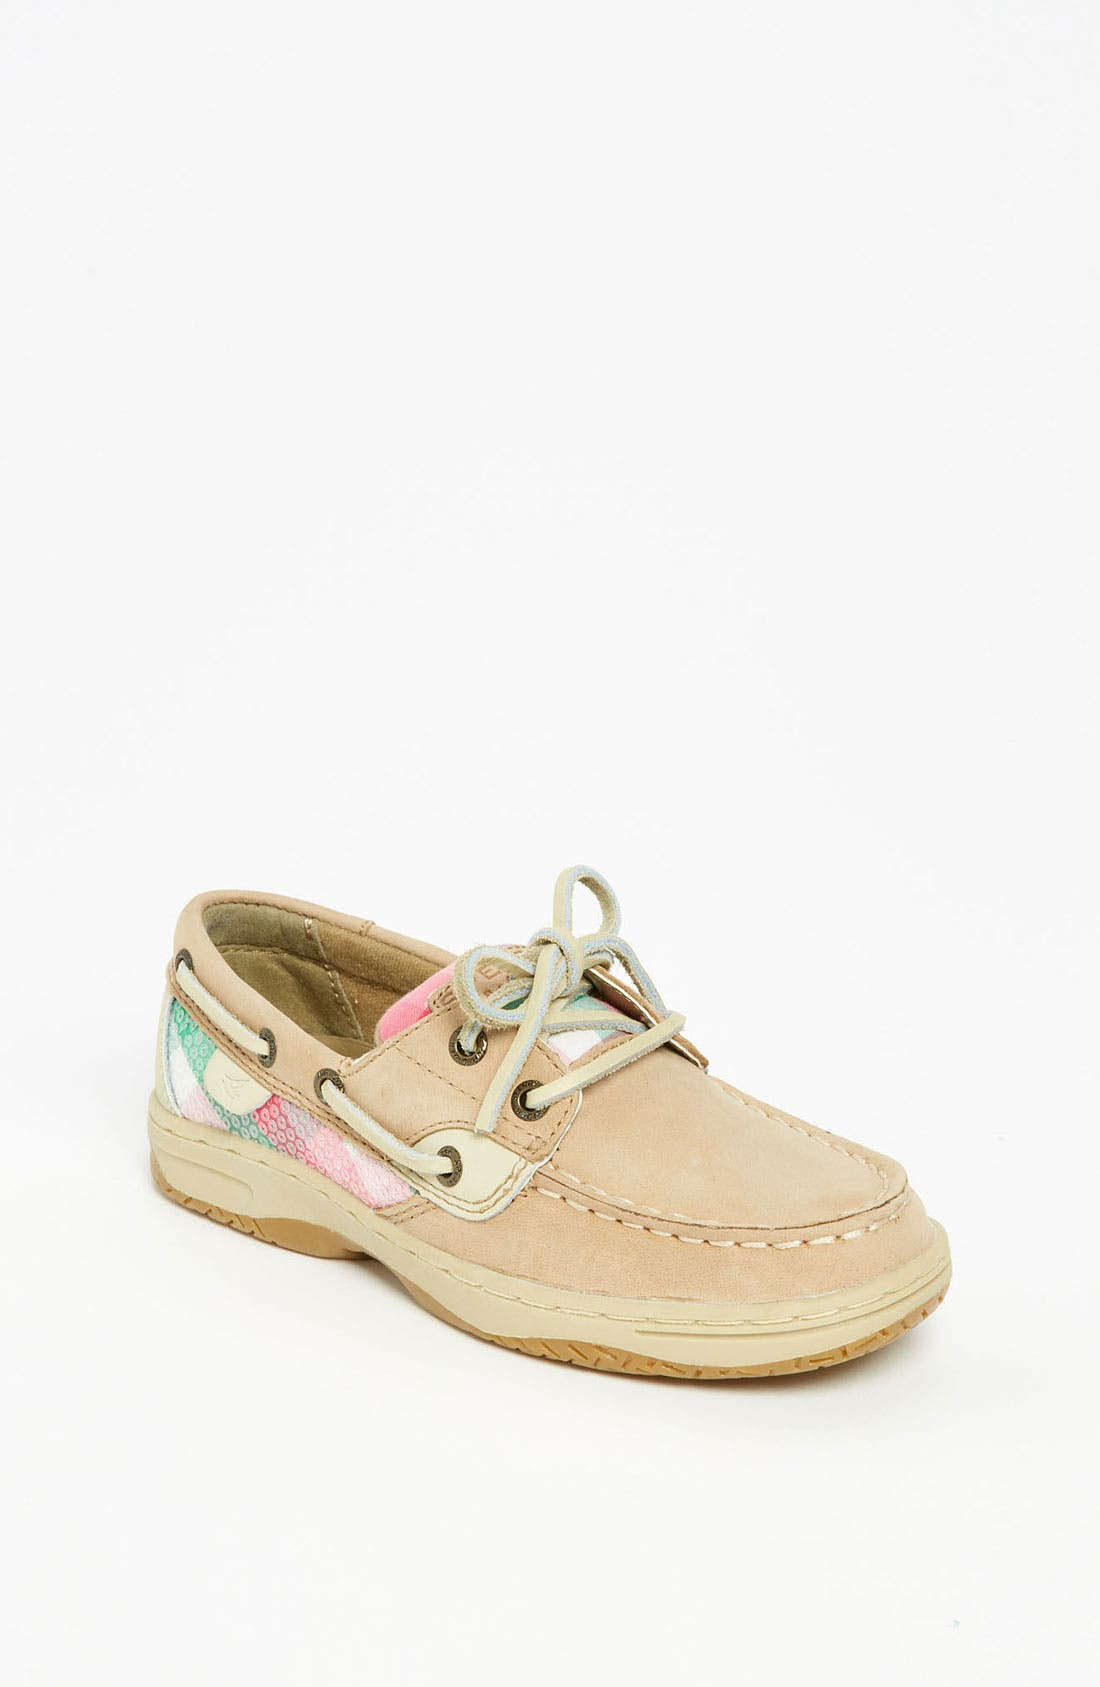 Sperry Top-Sider<sup>®</sup> 'Bluefish' Boat Shoe,                         Main,                         color,